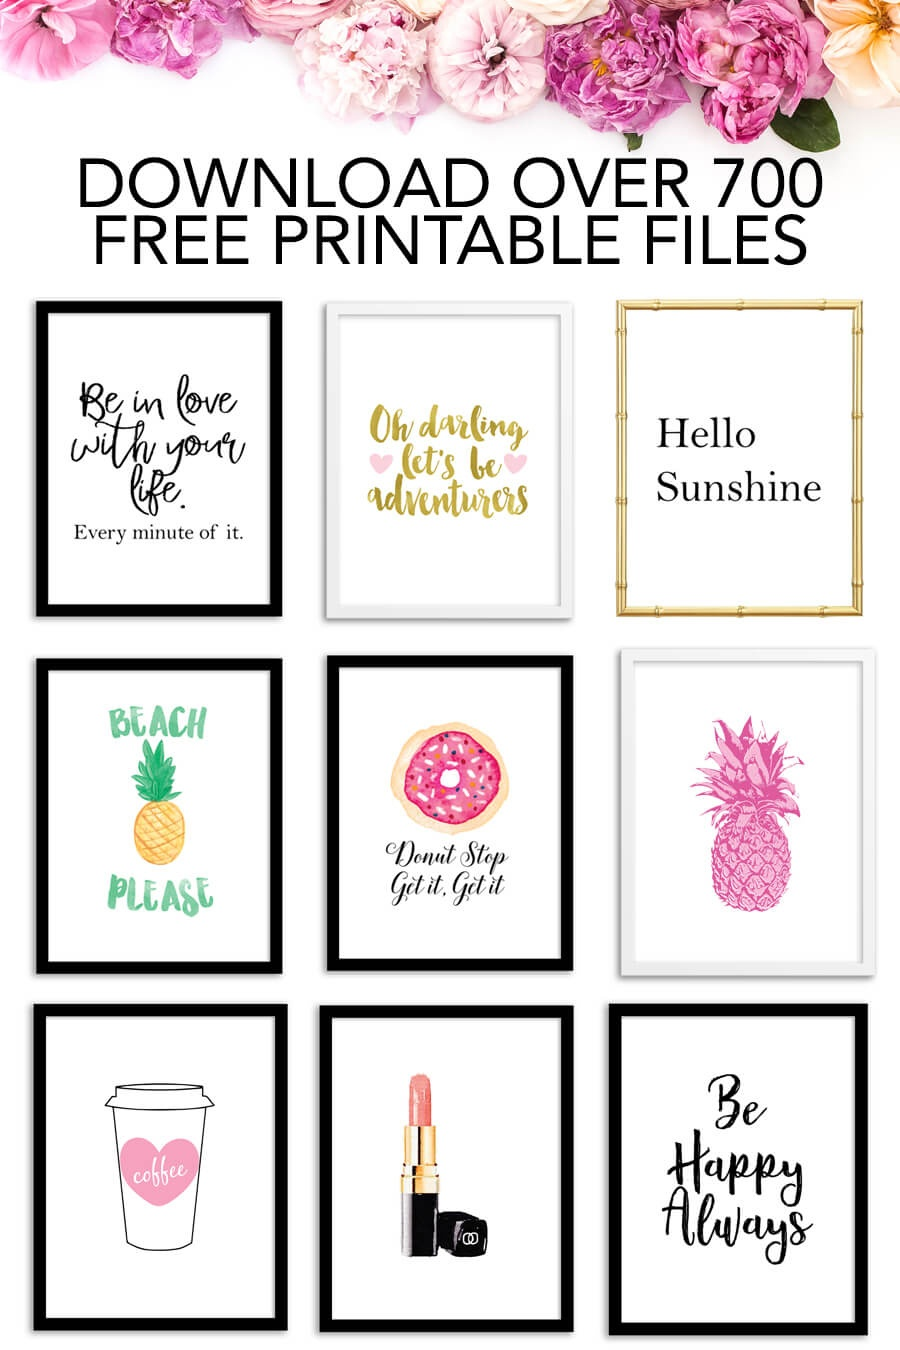 Free Printables - Download Over 700 Free Printable Files! - Chicfetti - Free Printable Pictures